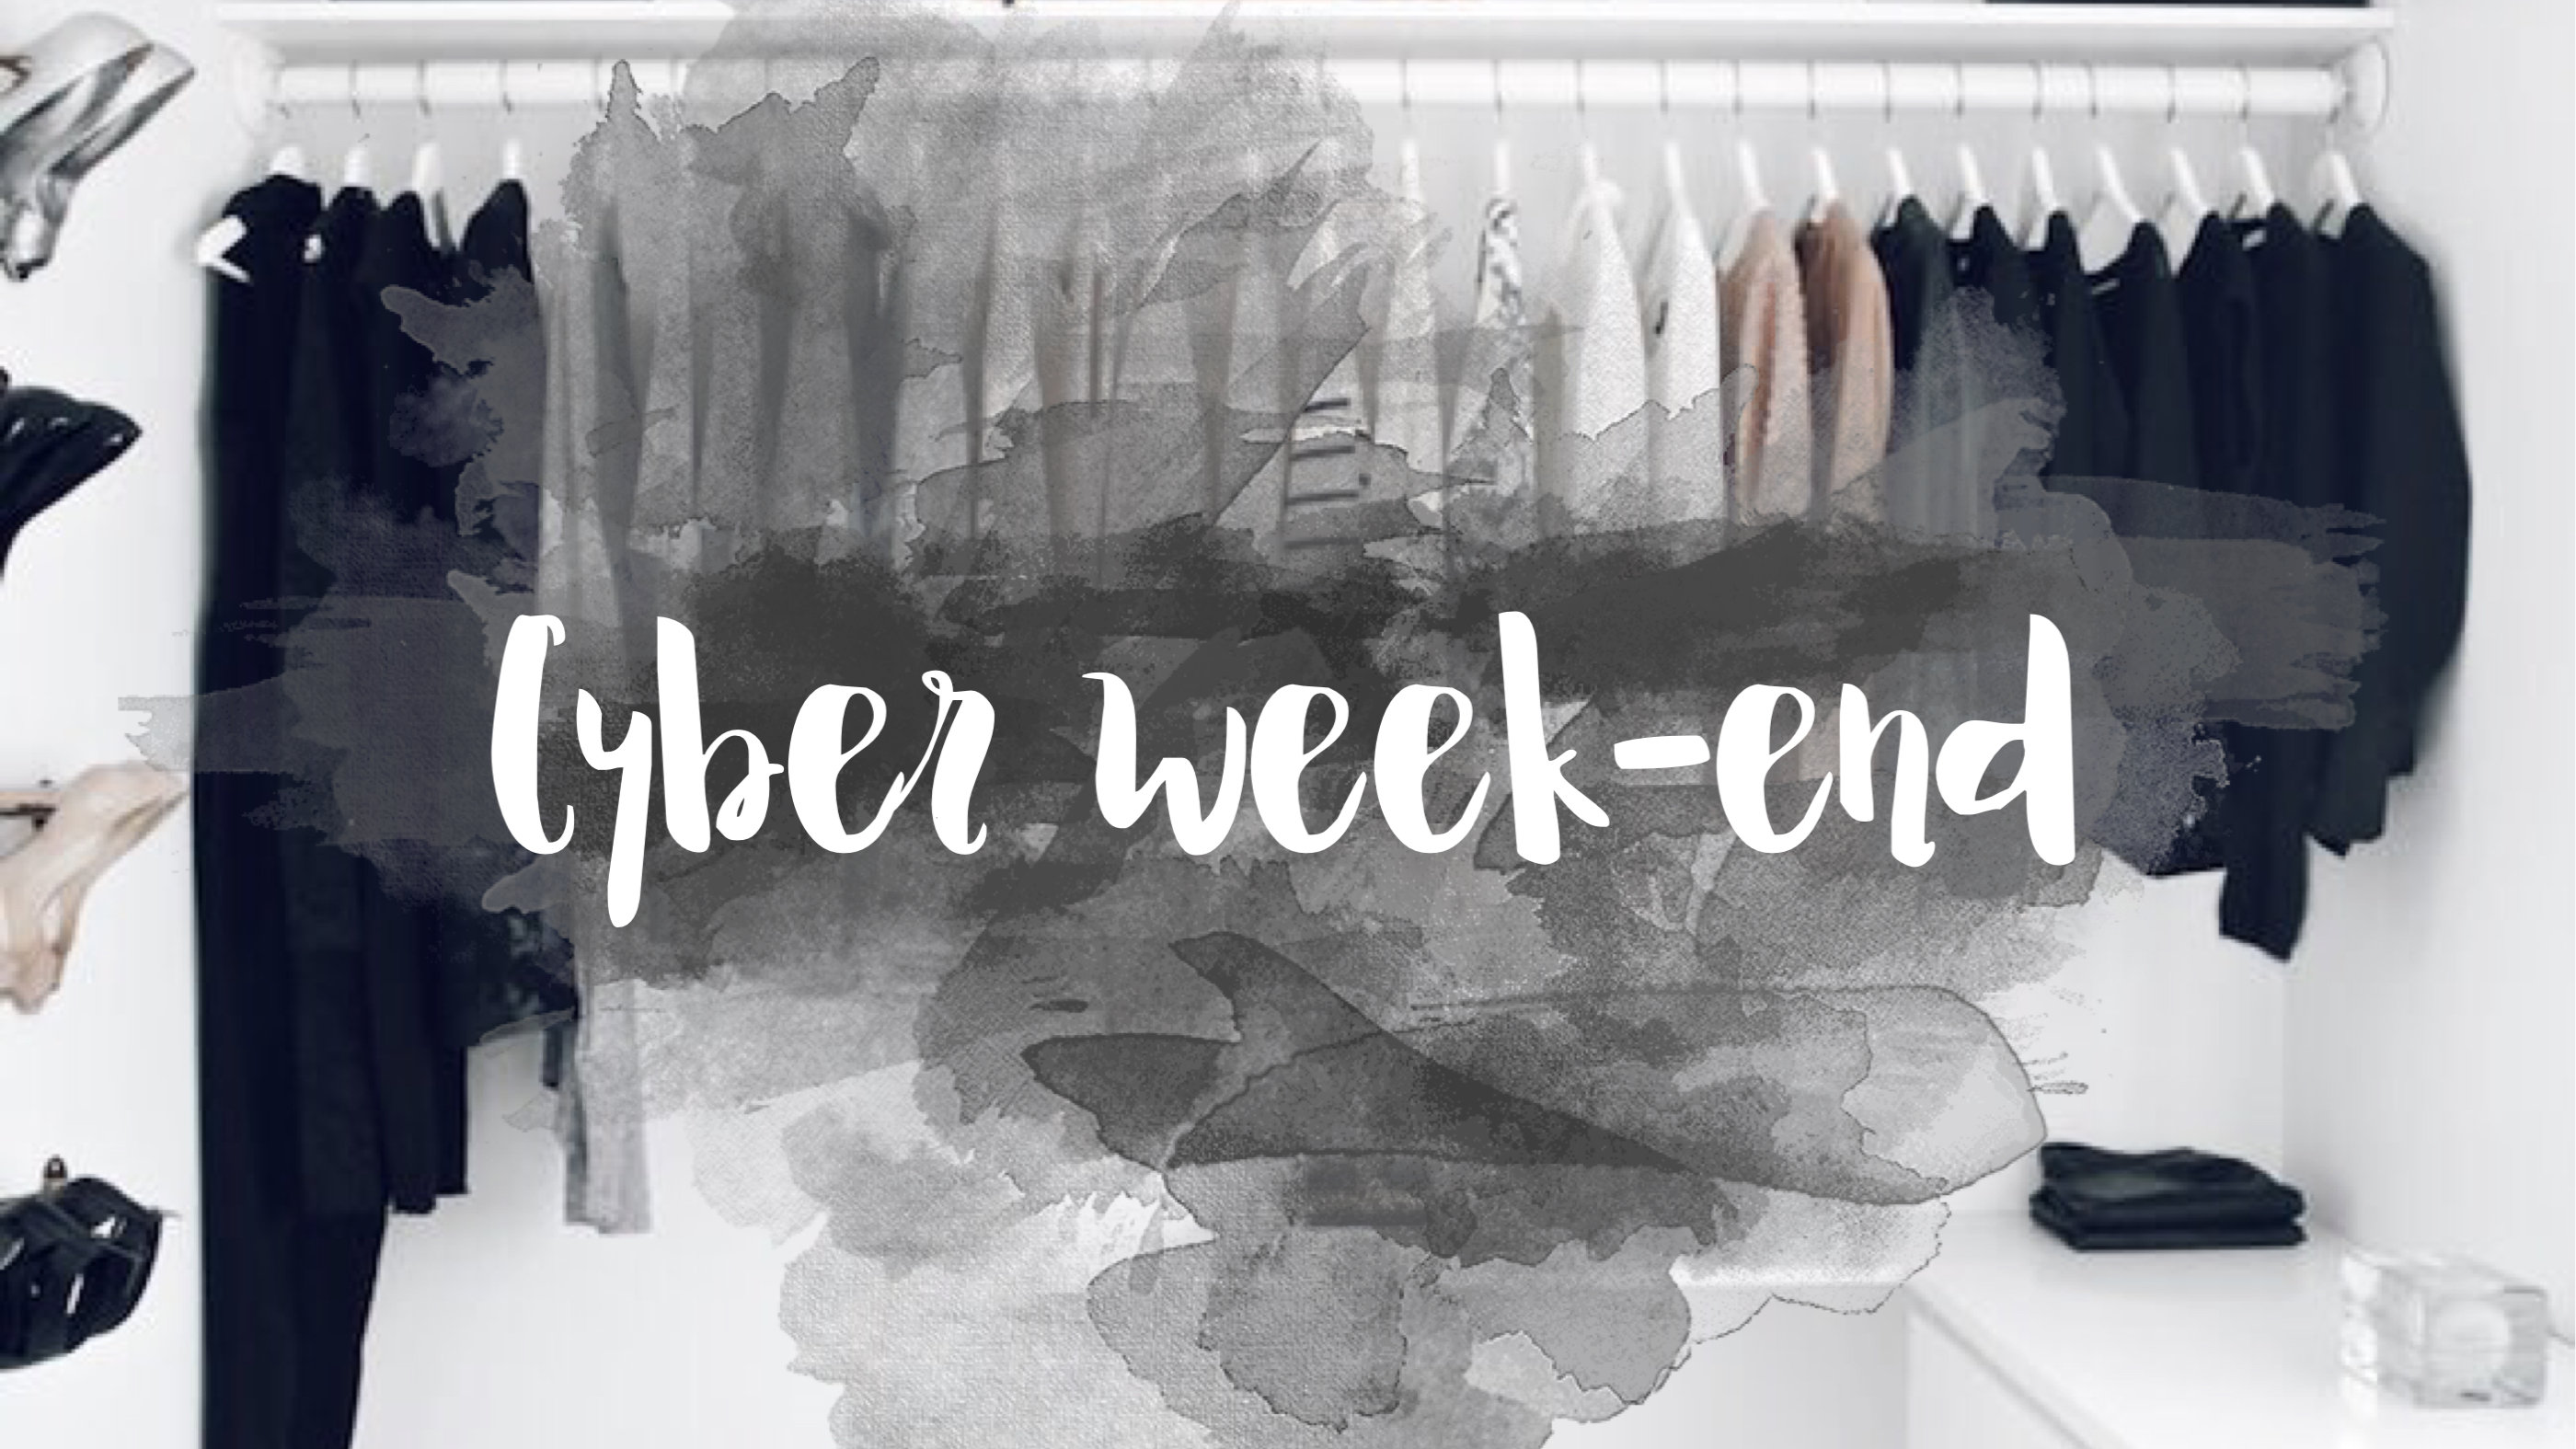 cyber-week-end-black-friday-promos-mode-boohoo-shein